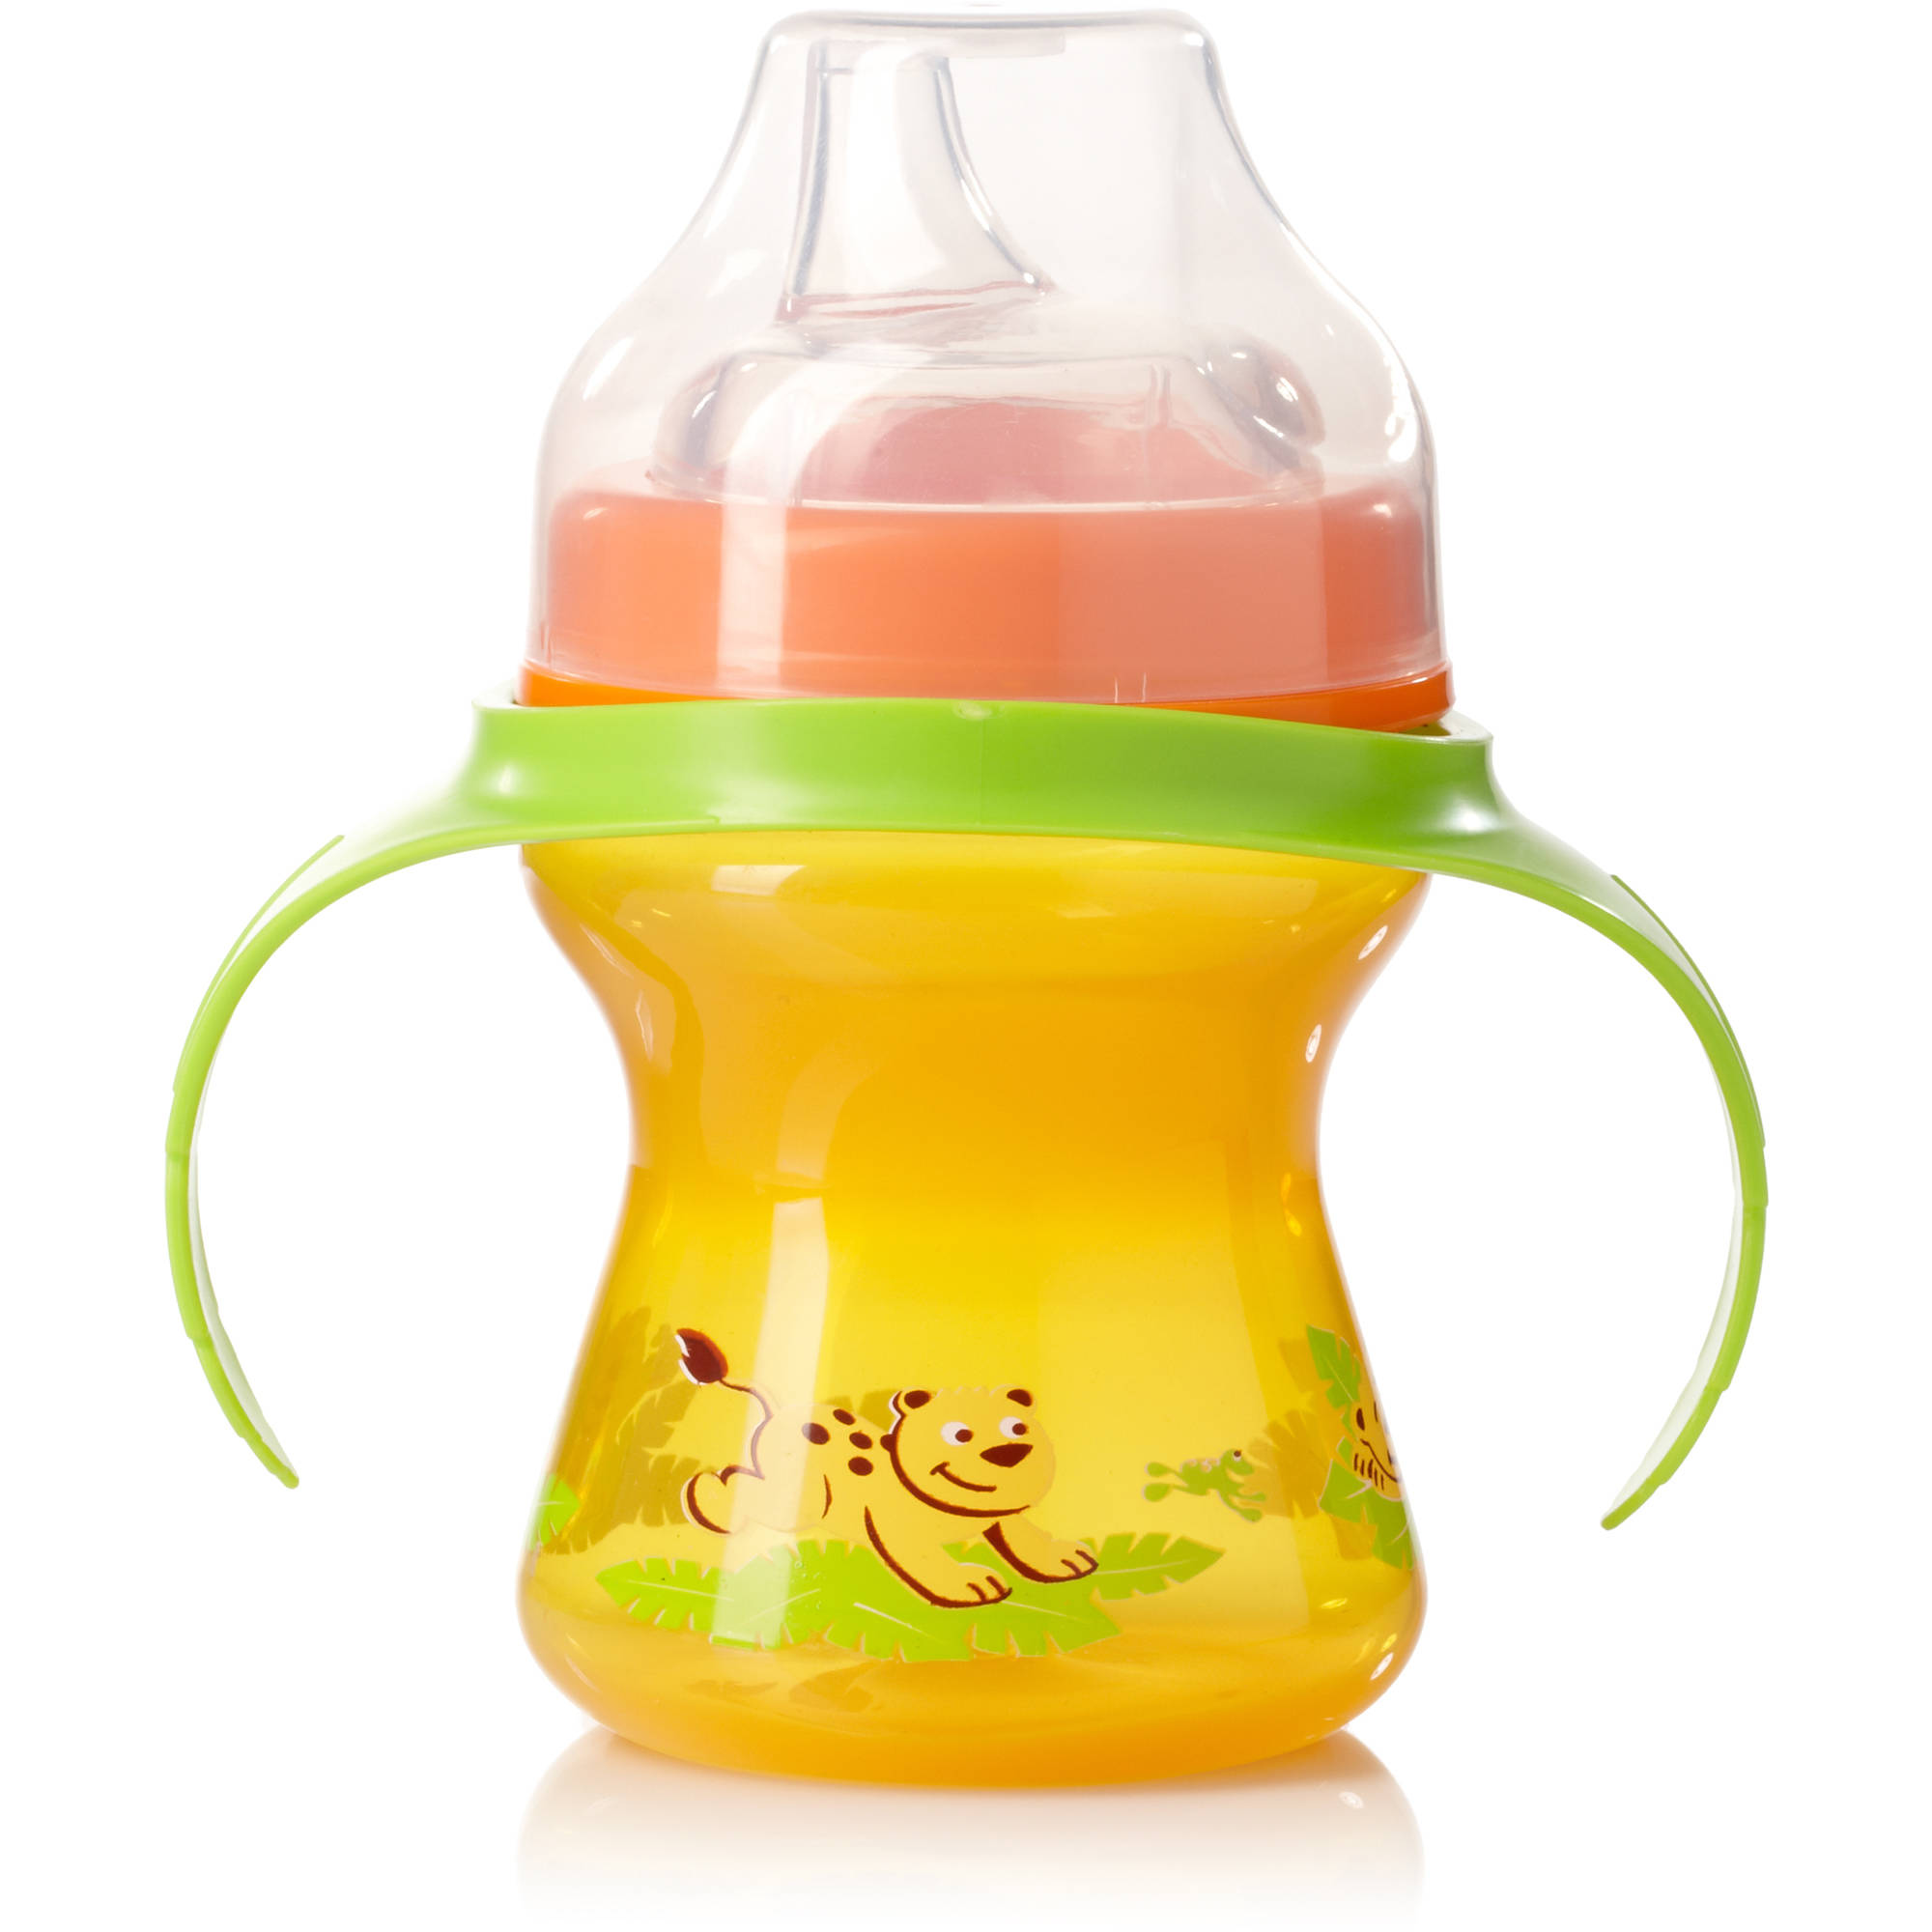 Evenflo Zoo Friends Trainer Cup, BPA-Free (Color May Vary)